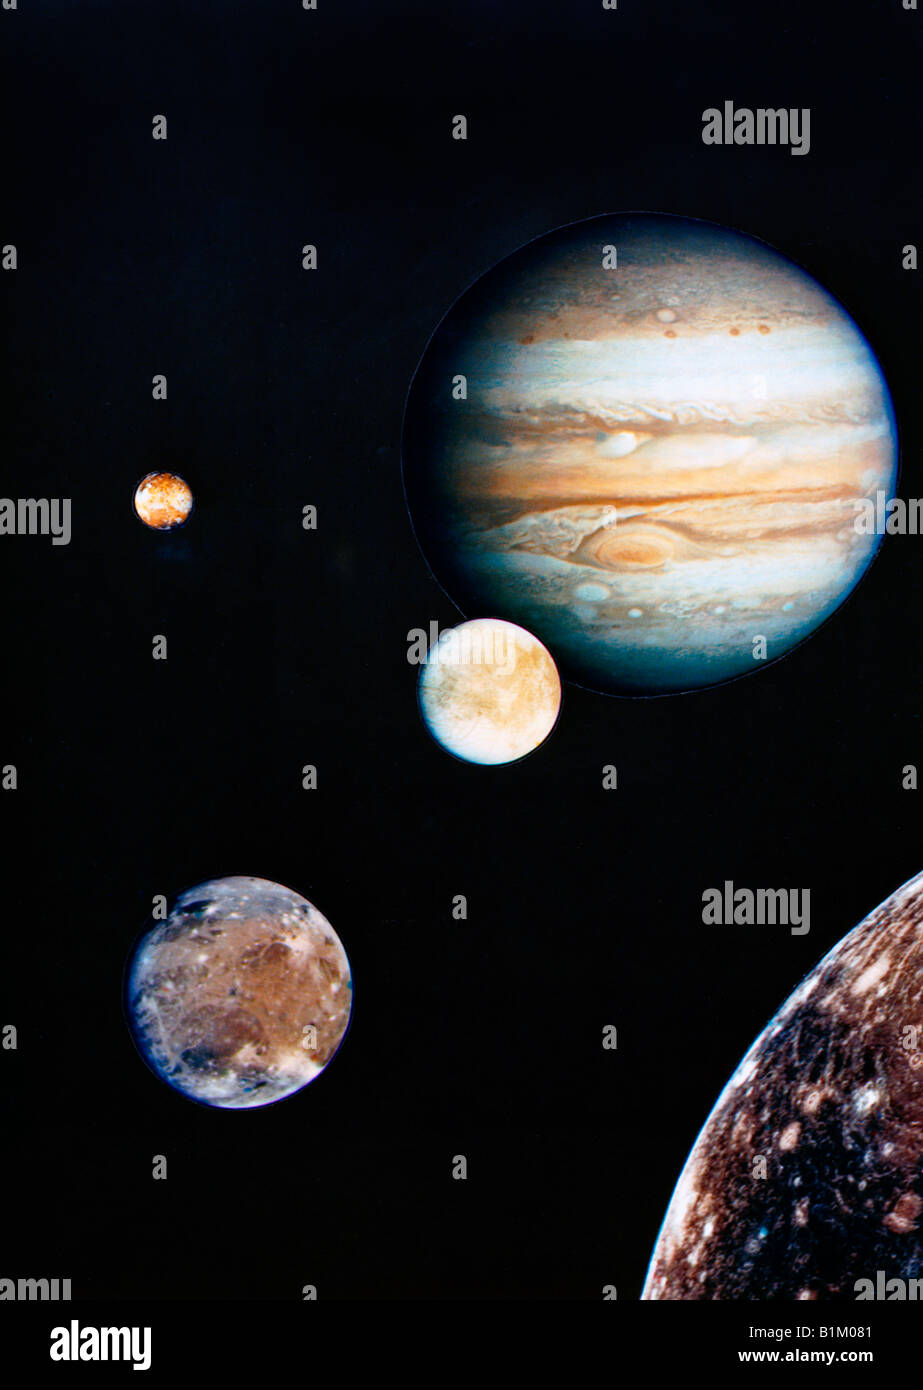 Jupiter And Its Moons  Io, Europa, Ganymede And Callisto - Composite Photo By Voyager I - Stock Image